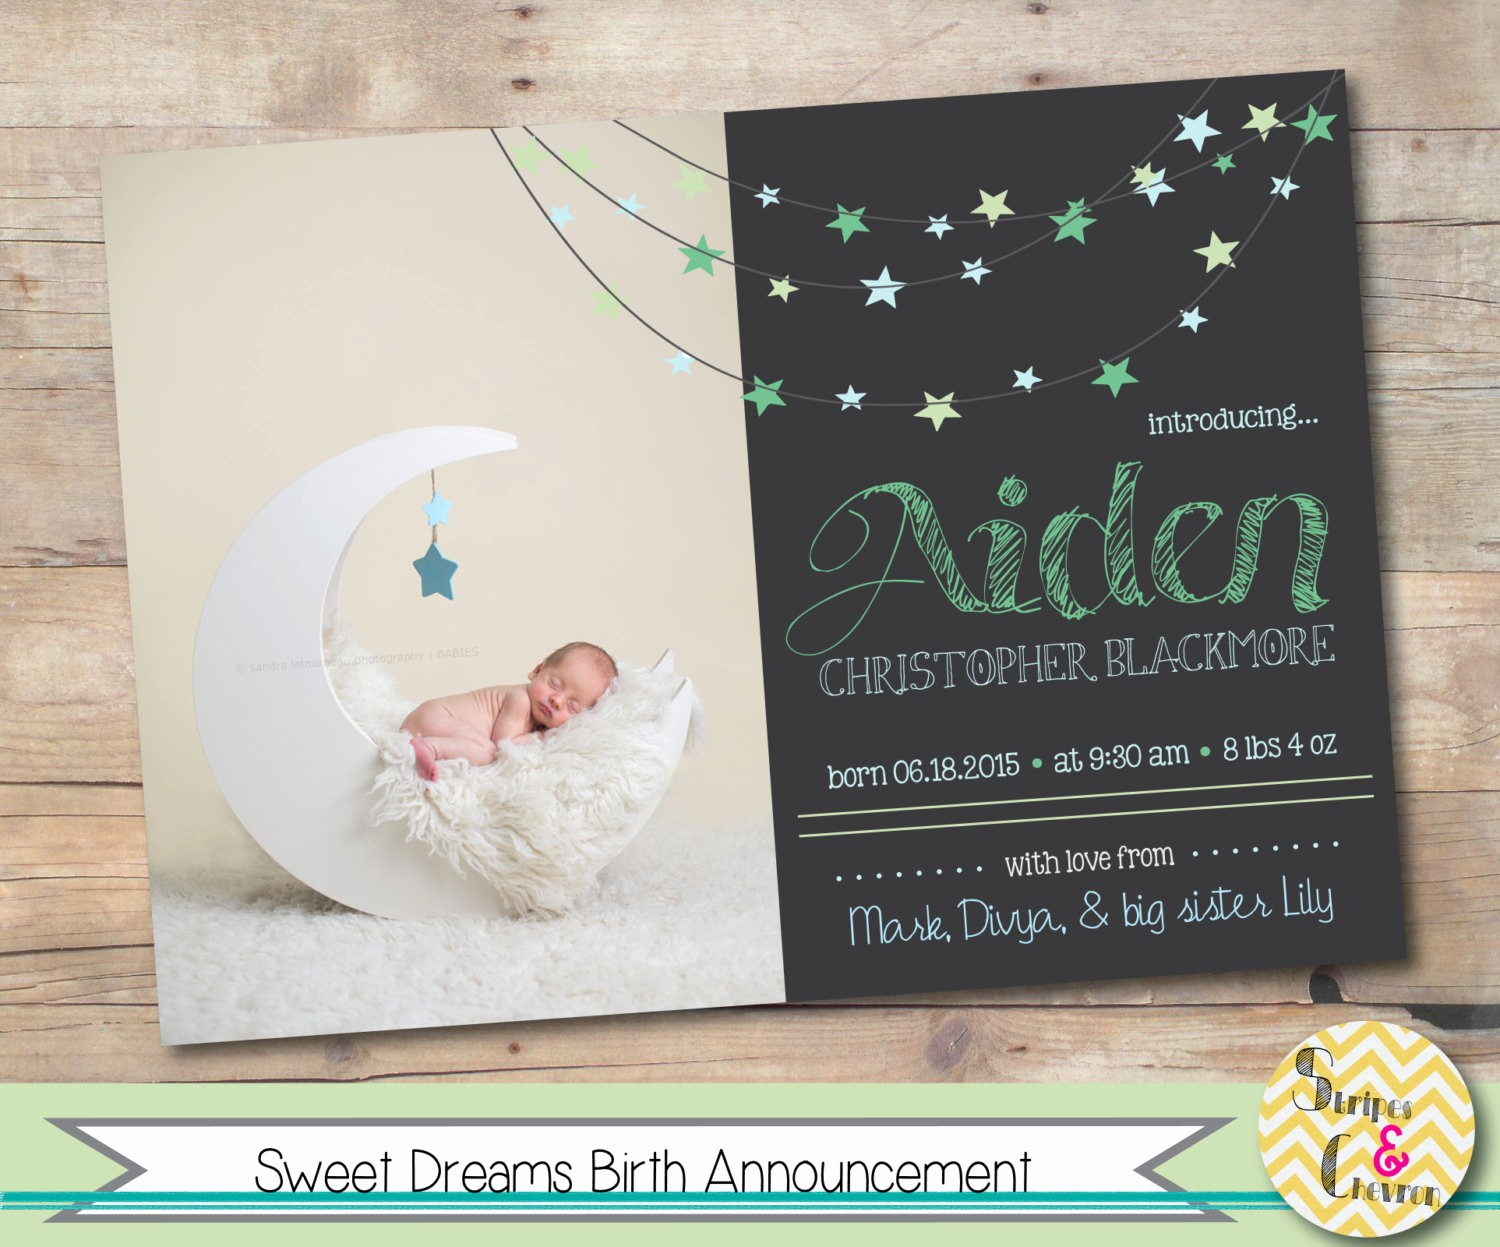 Baby Boy Birth Announcement Template Lovely Baby Birth Announcement Template Baby Boy or Baby Girl Moon